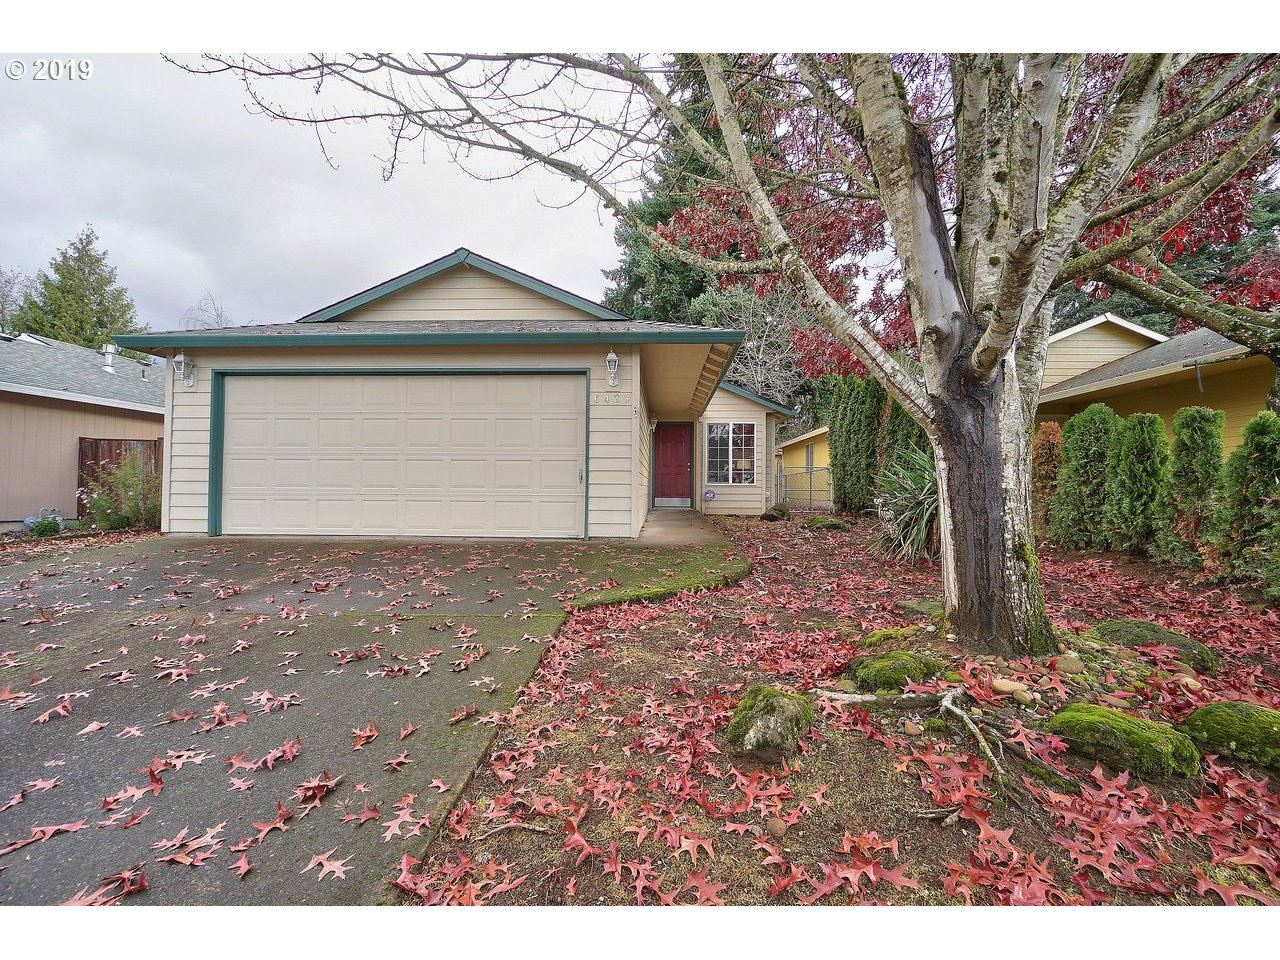 6428 SE 139TH AVE, Portland, OR 97236 - MLS#: 19463254